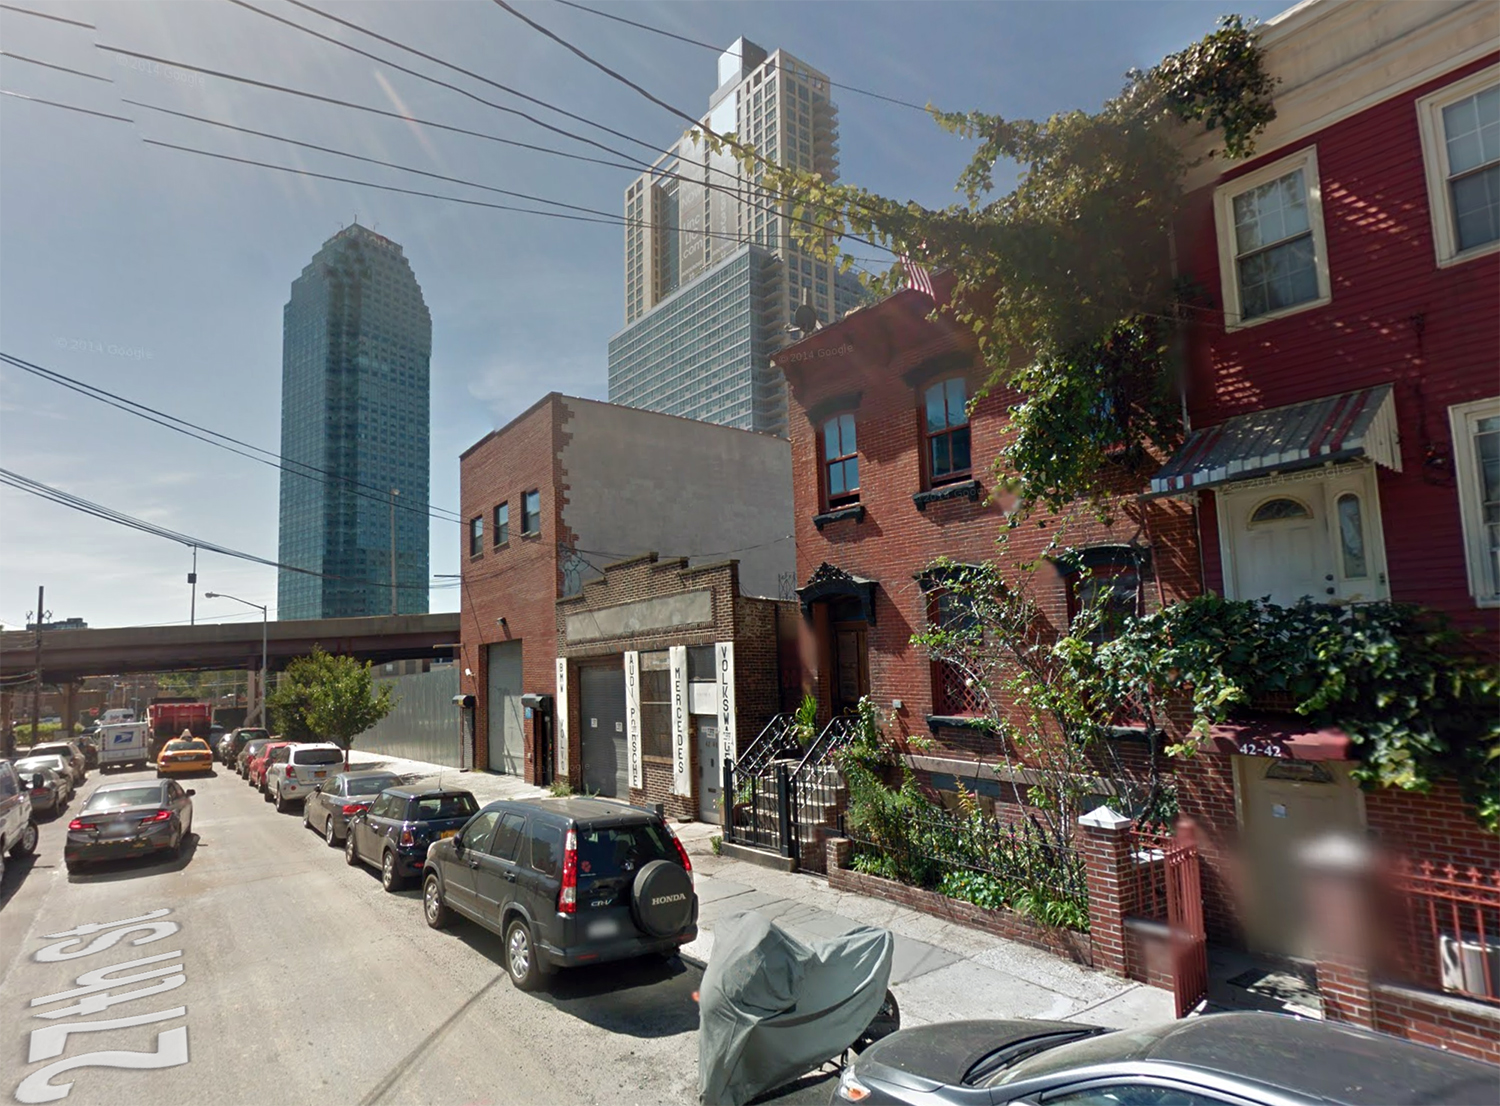 42-50 27th Street, September 2014. Via Google Maps.